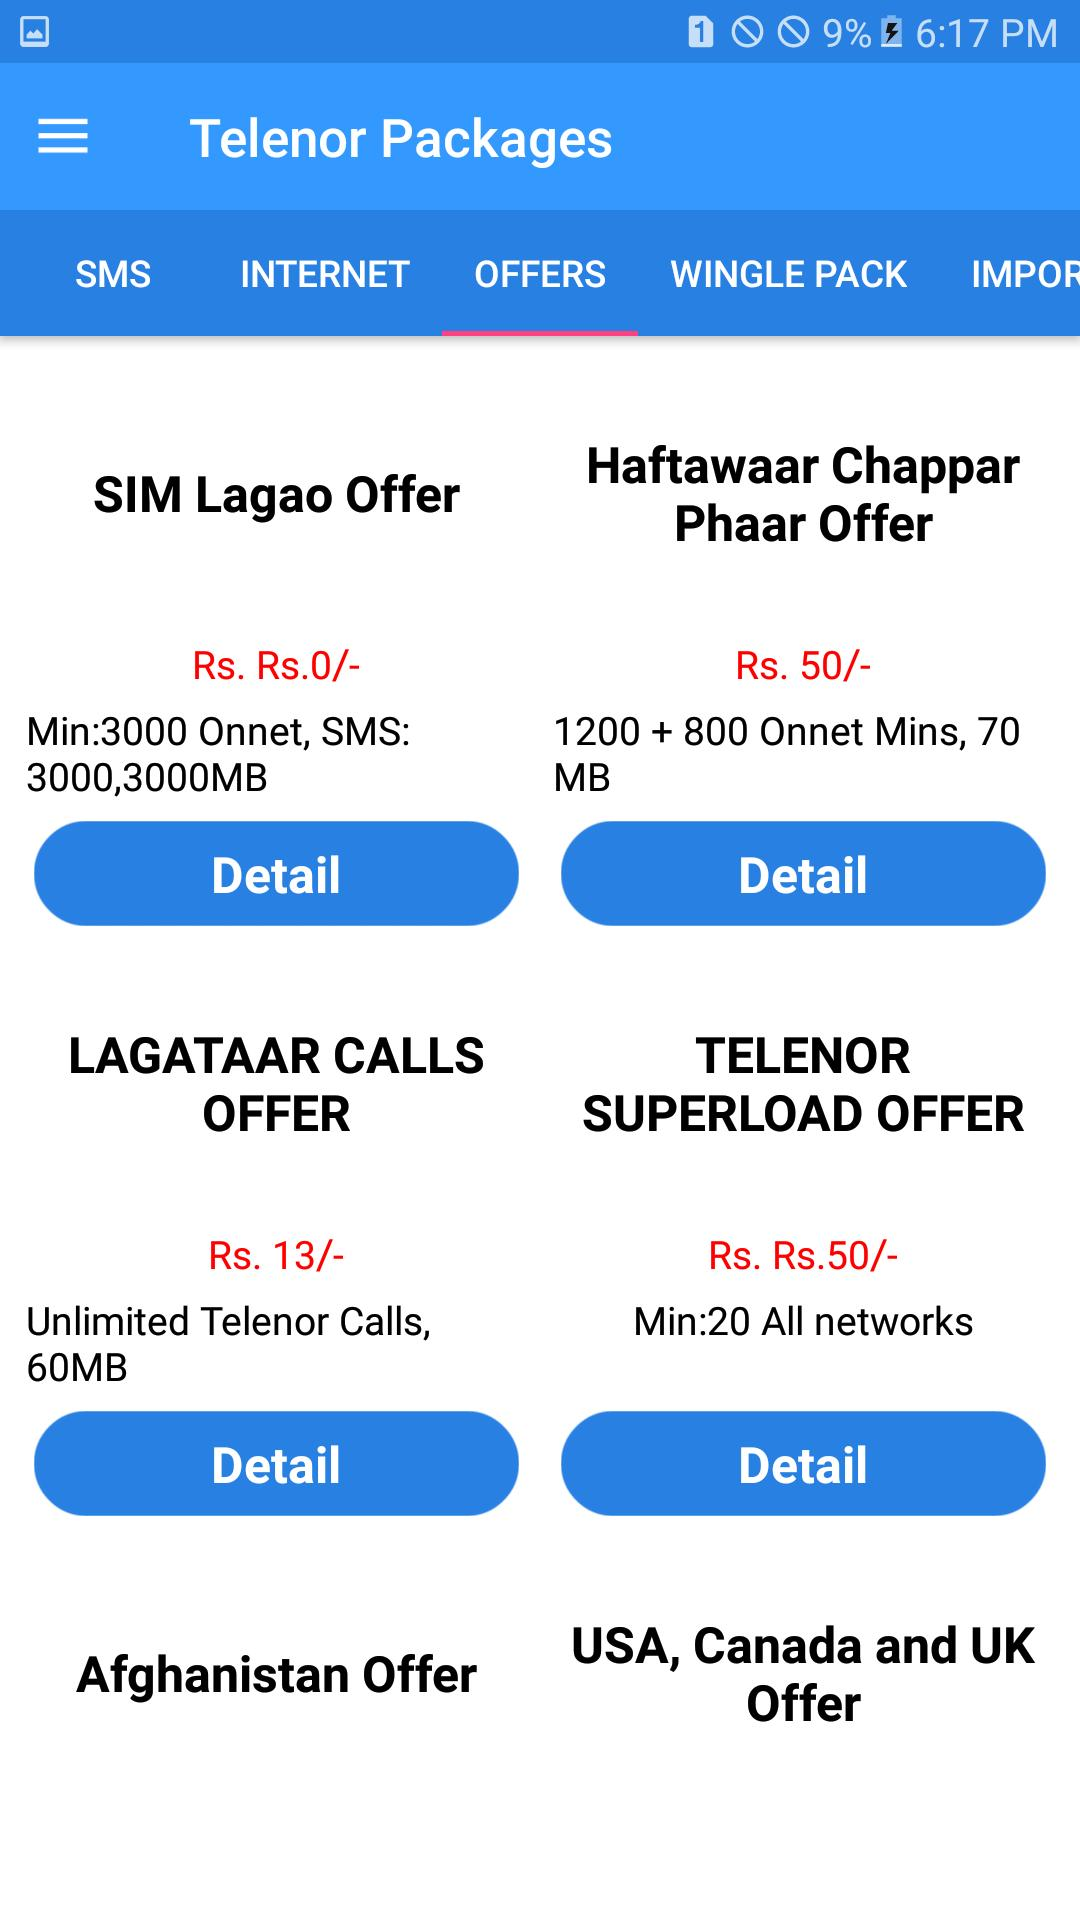 All Telnor Packages 2019 Free: for Android - APK Download